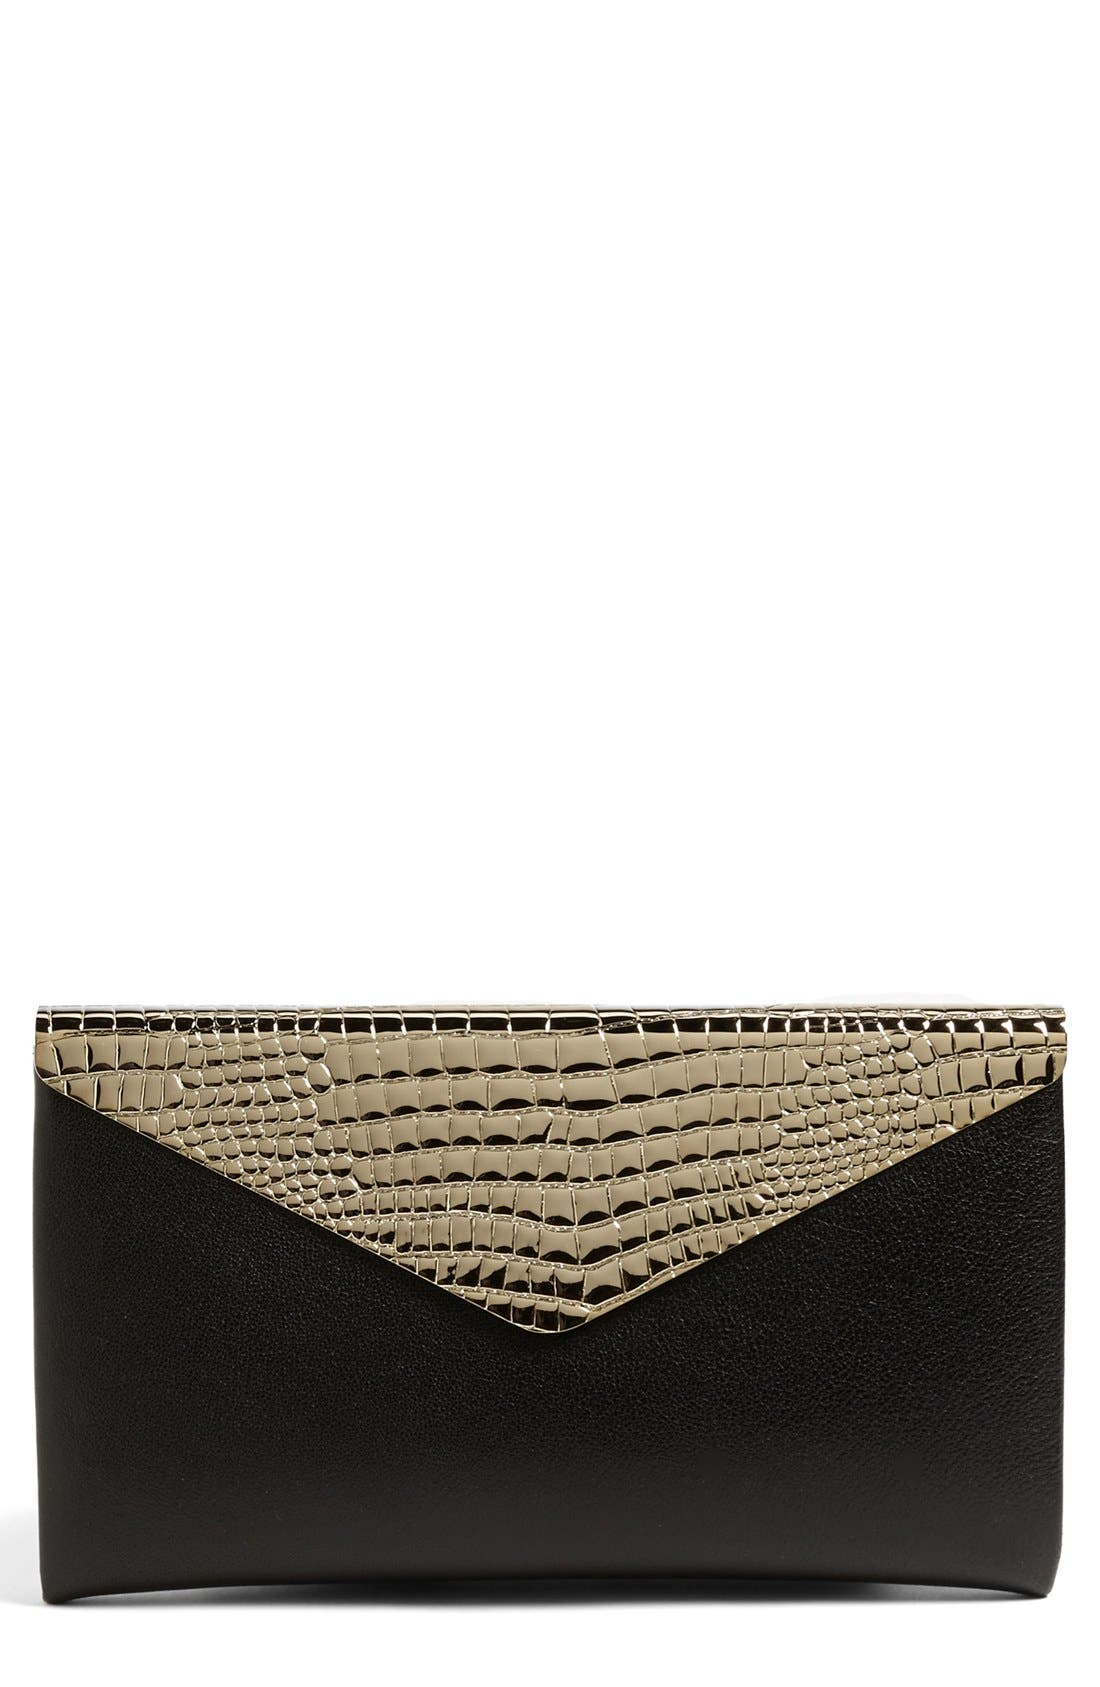 Main Image - Jimmy Choo 'Charlize' Envelope Clutch